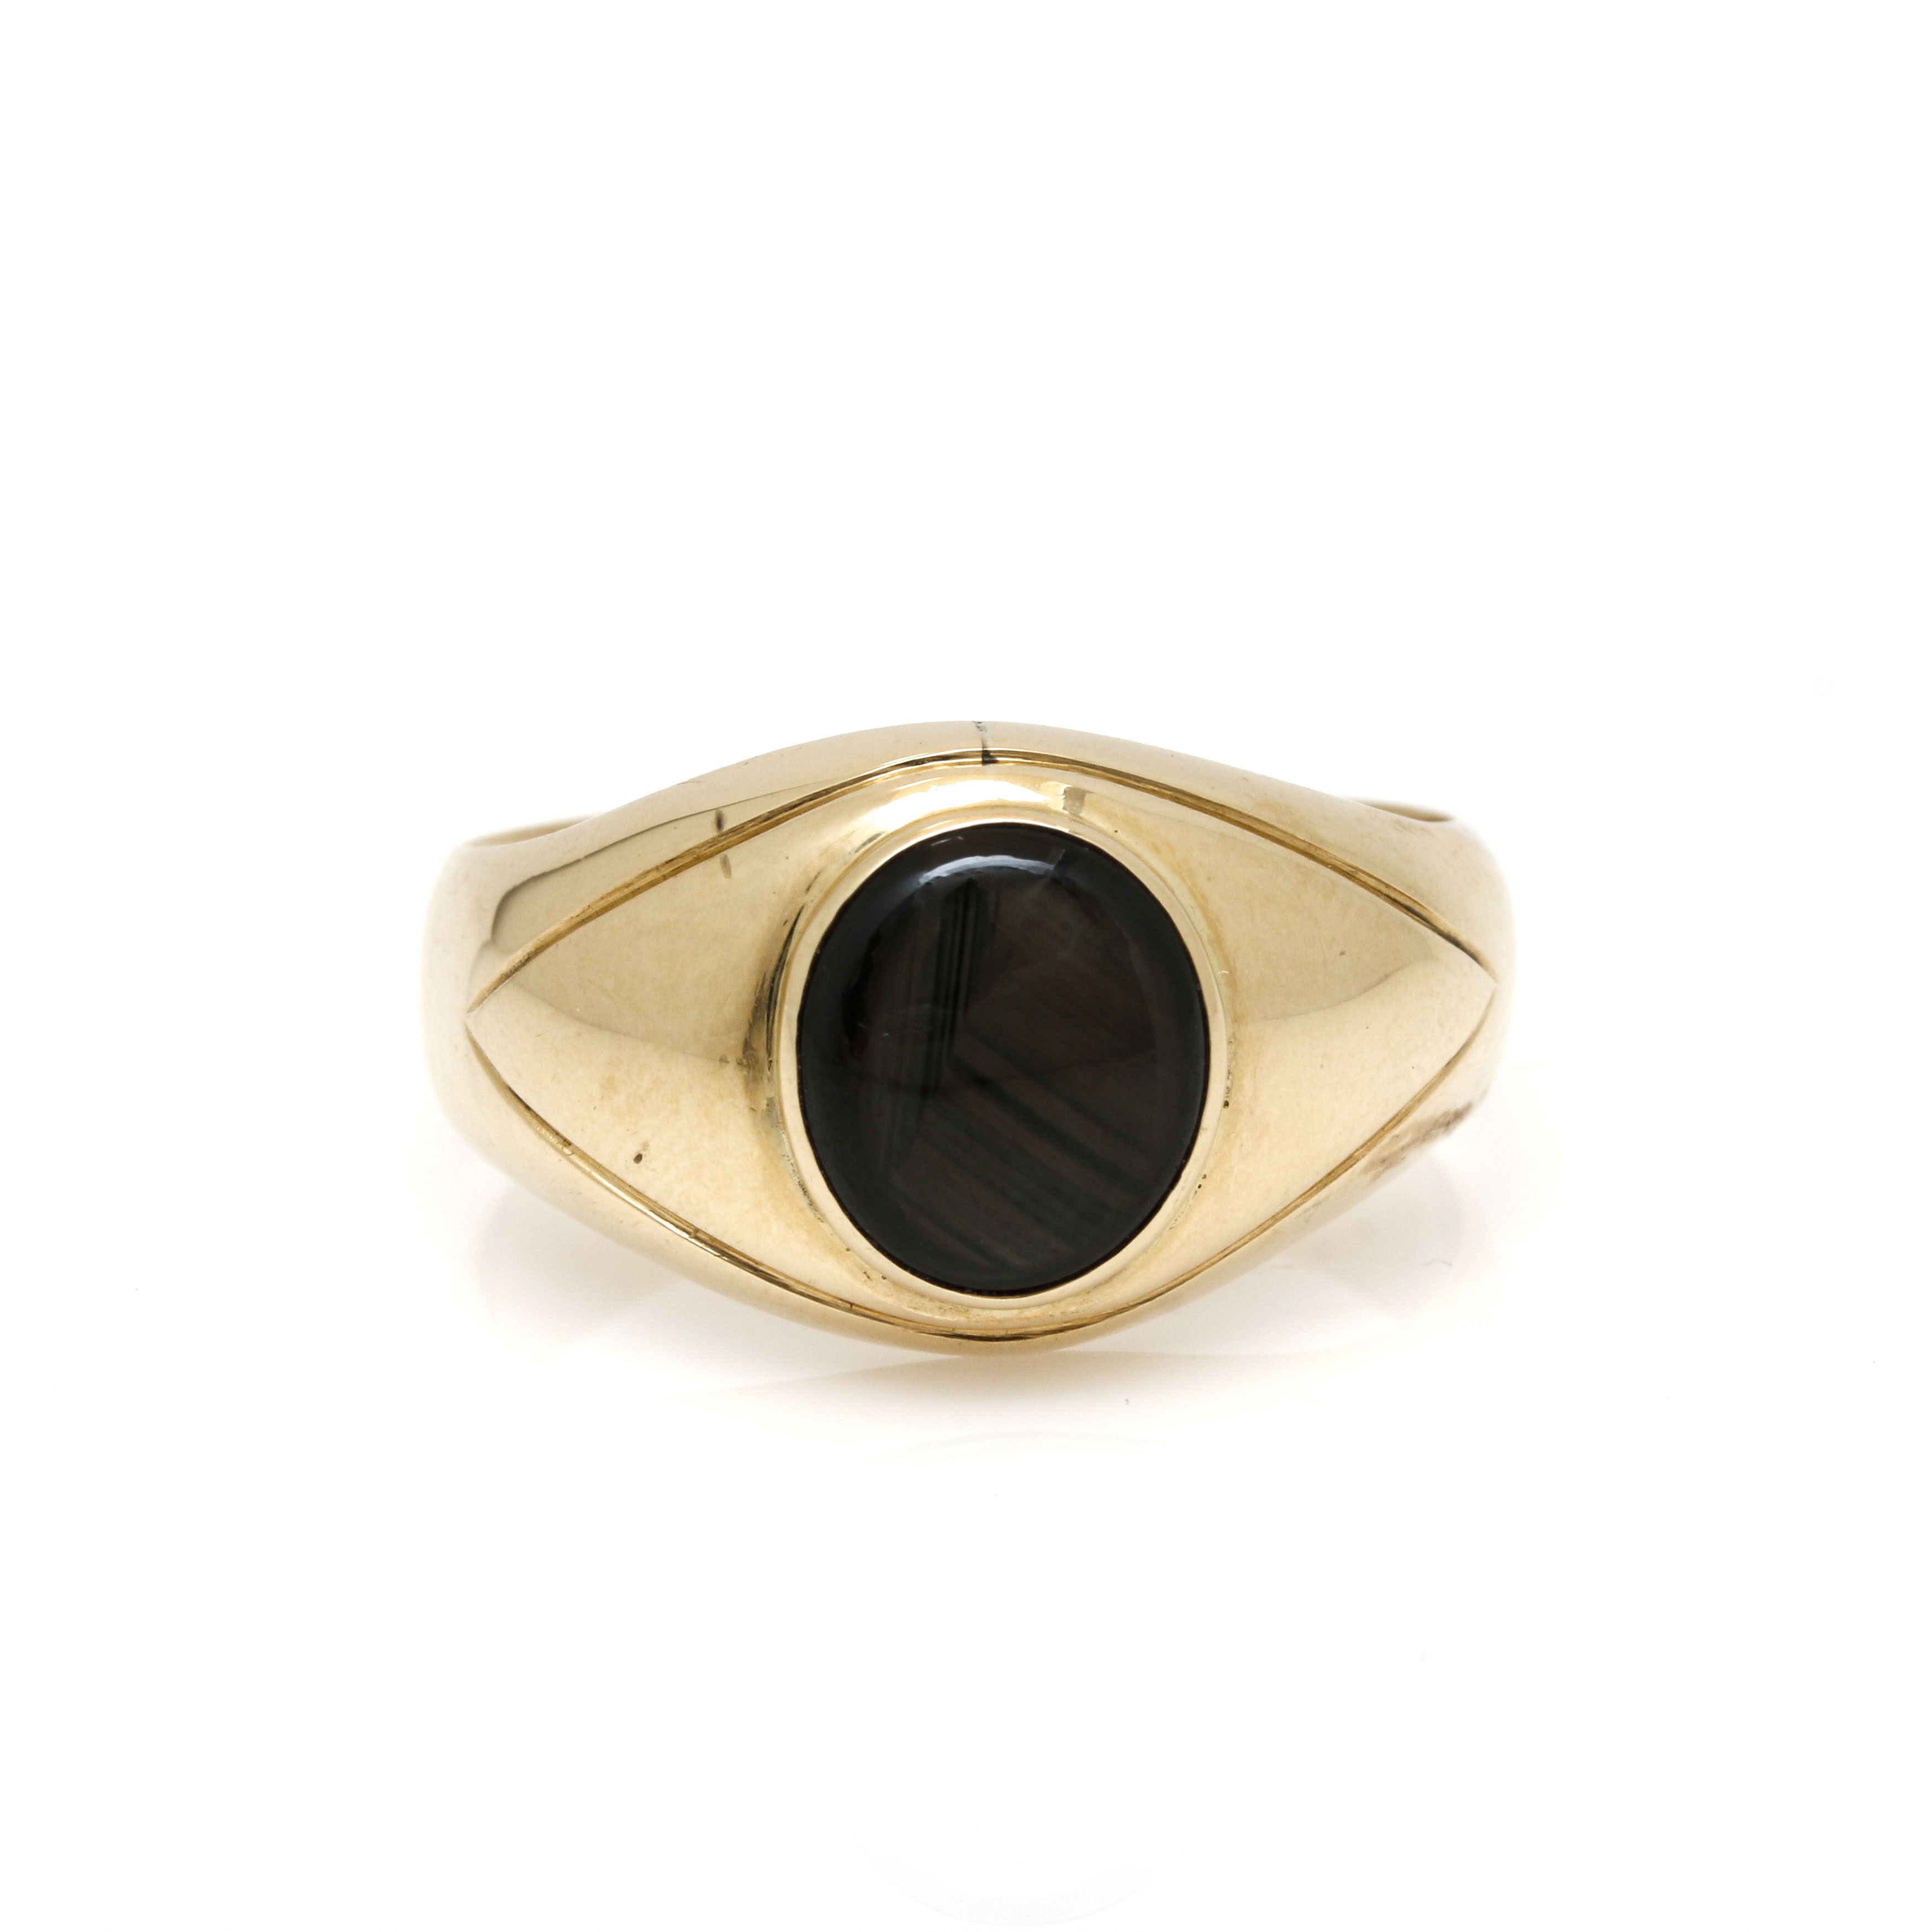 10K Yellow Gold Black Star Sapphire Ring